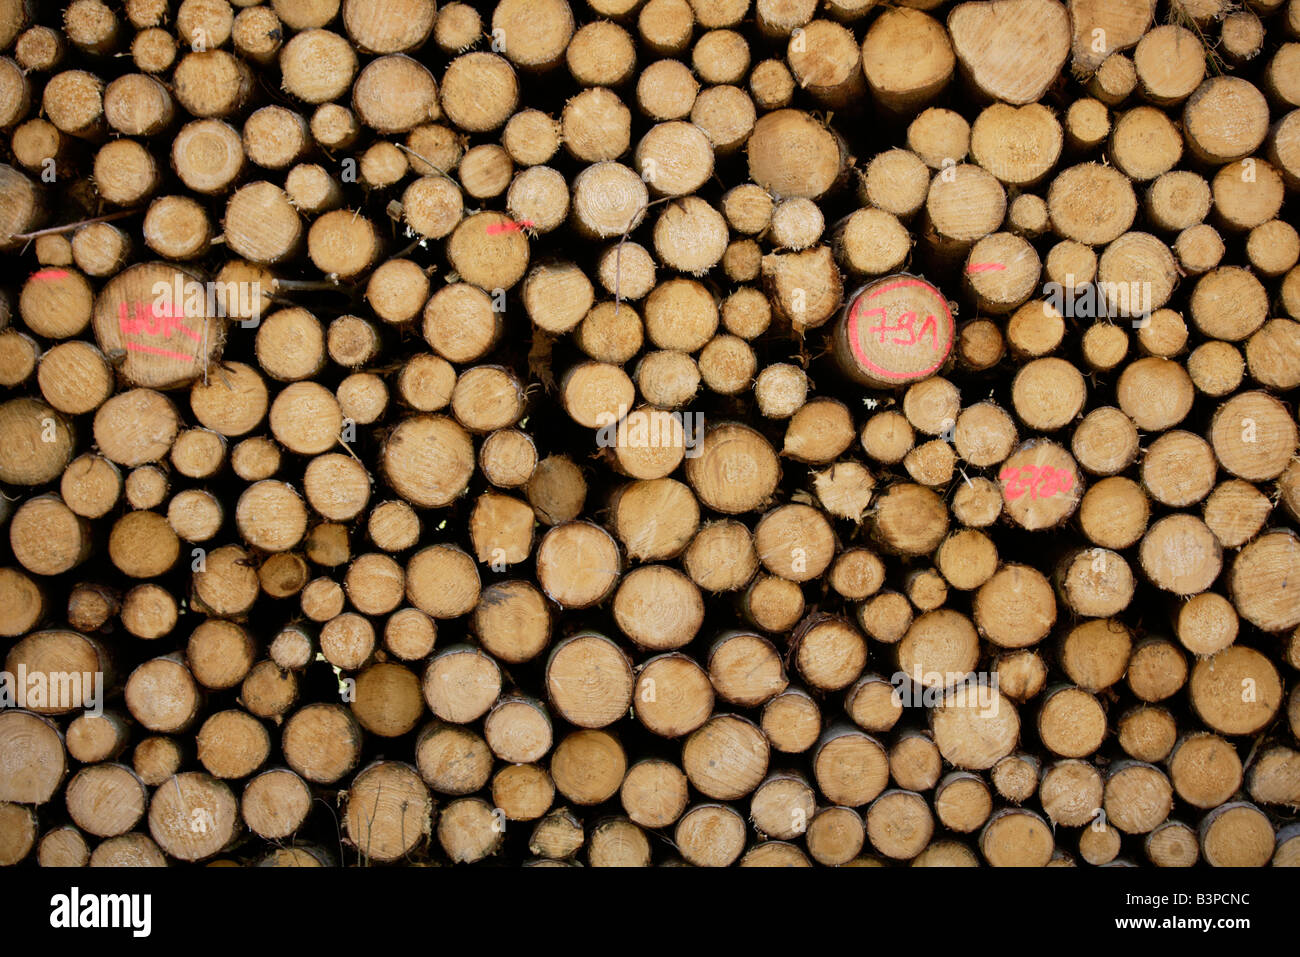 Germany, Bavaria, Upper Bavaria, Stack of sawn timber, full frame - Stock Image